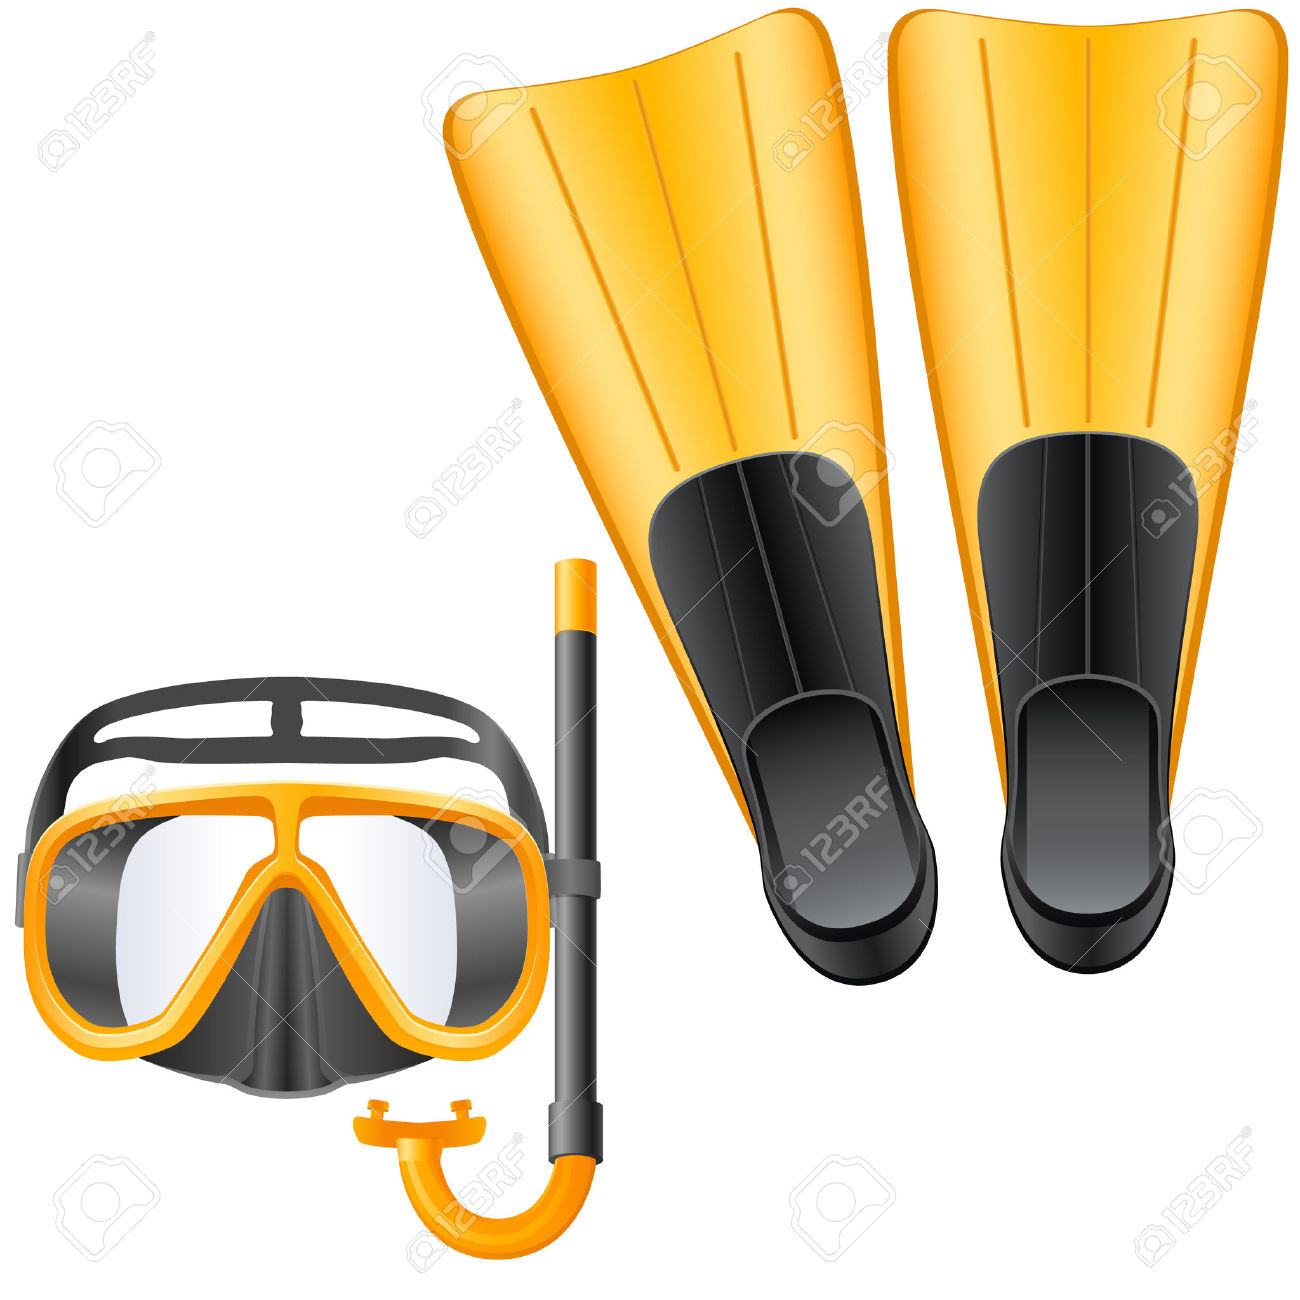 Swimmers mask clipart graphic transparent download Swimming Equipment Clipart & Free Clip Art Images #3472 ... graphic transparent download